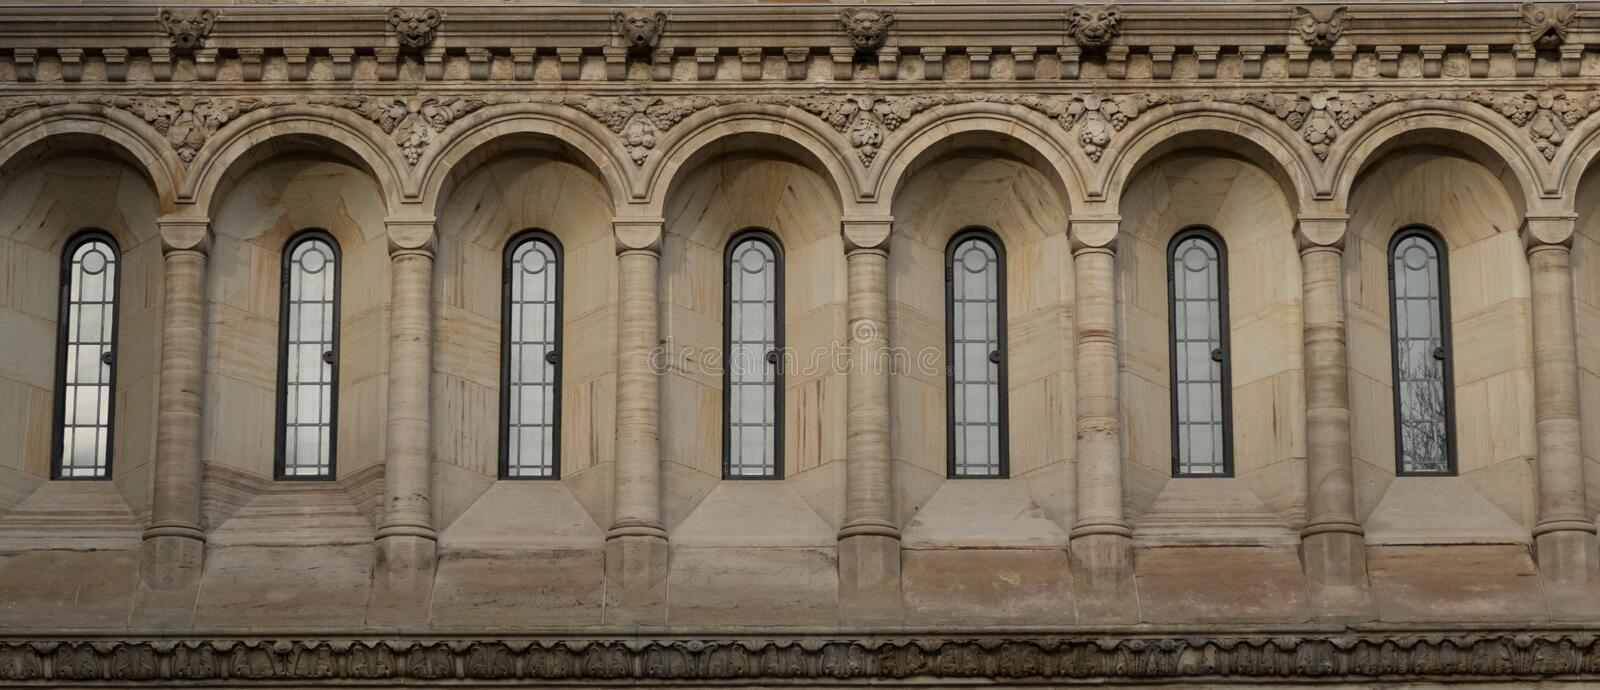 Windows in Neo-Gothic style. Windows in Victorian Gothic, Neo-Gothic or Jigsaw Gothic style royalty free stock images